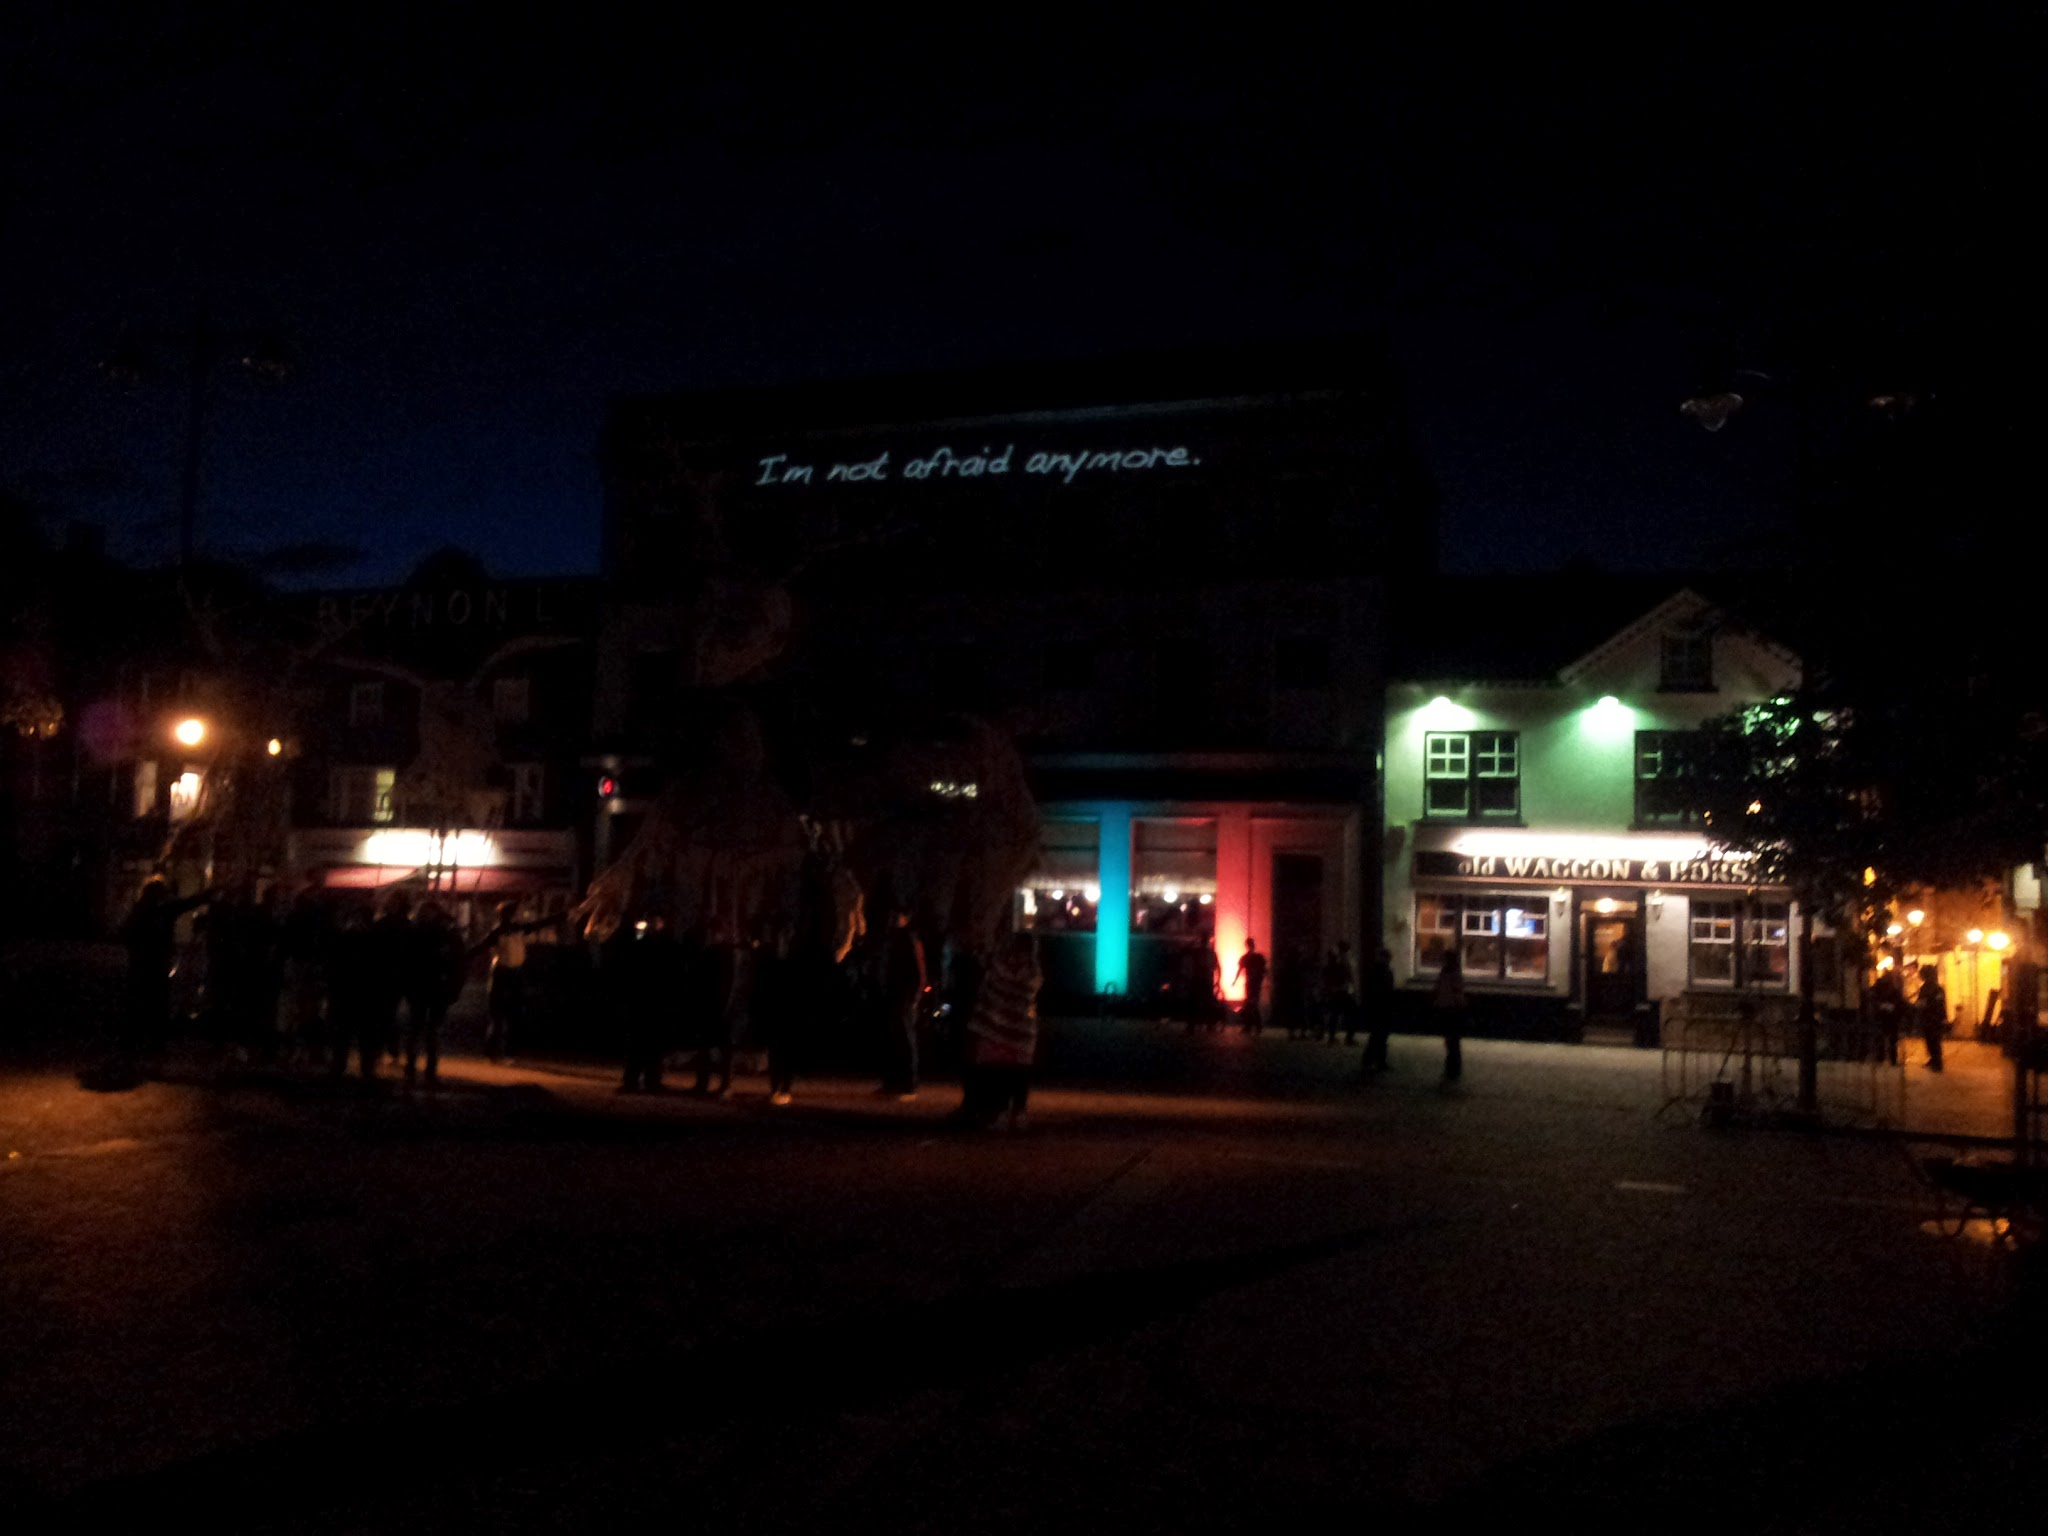 End result of the projection onto a building late at night